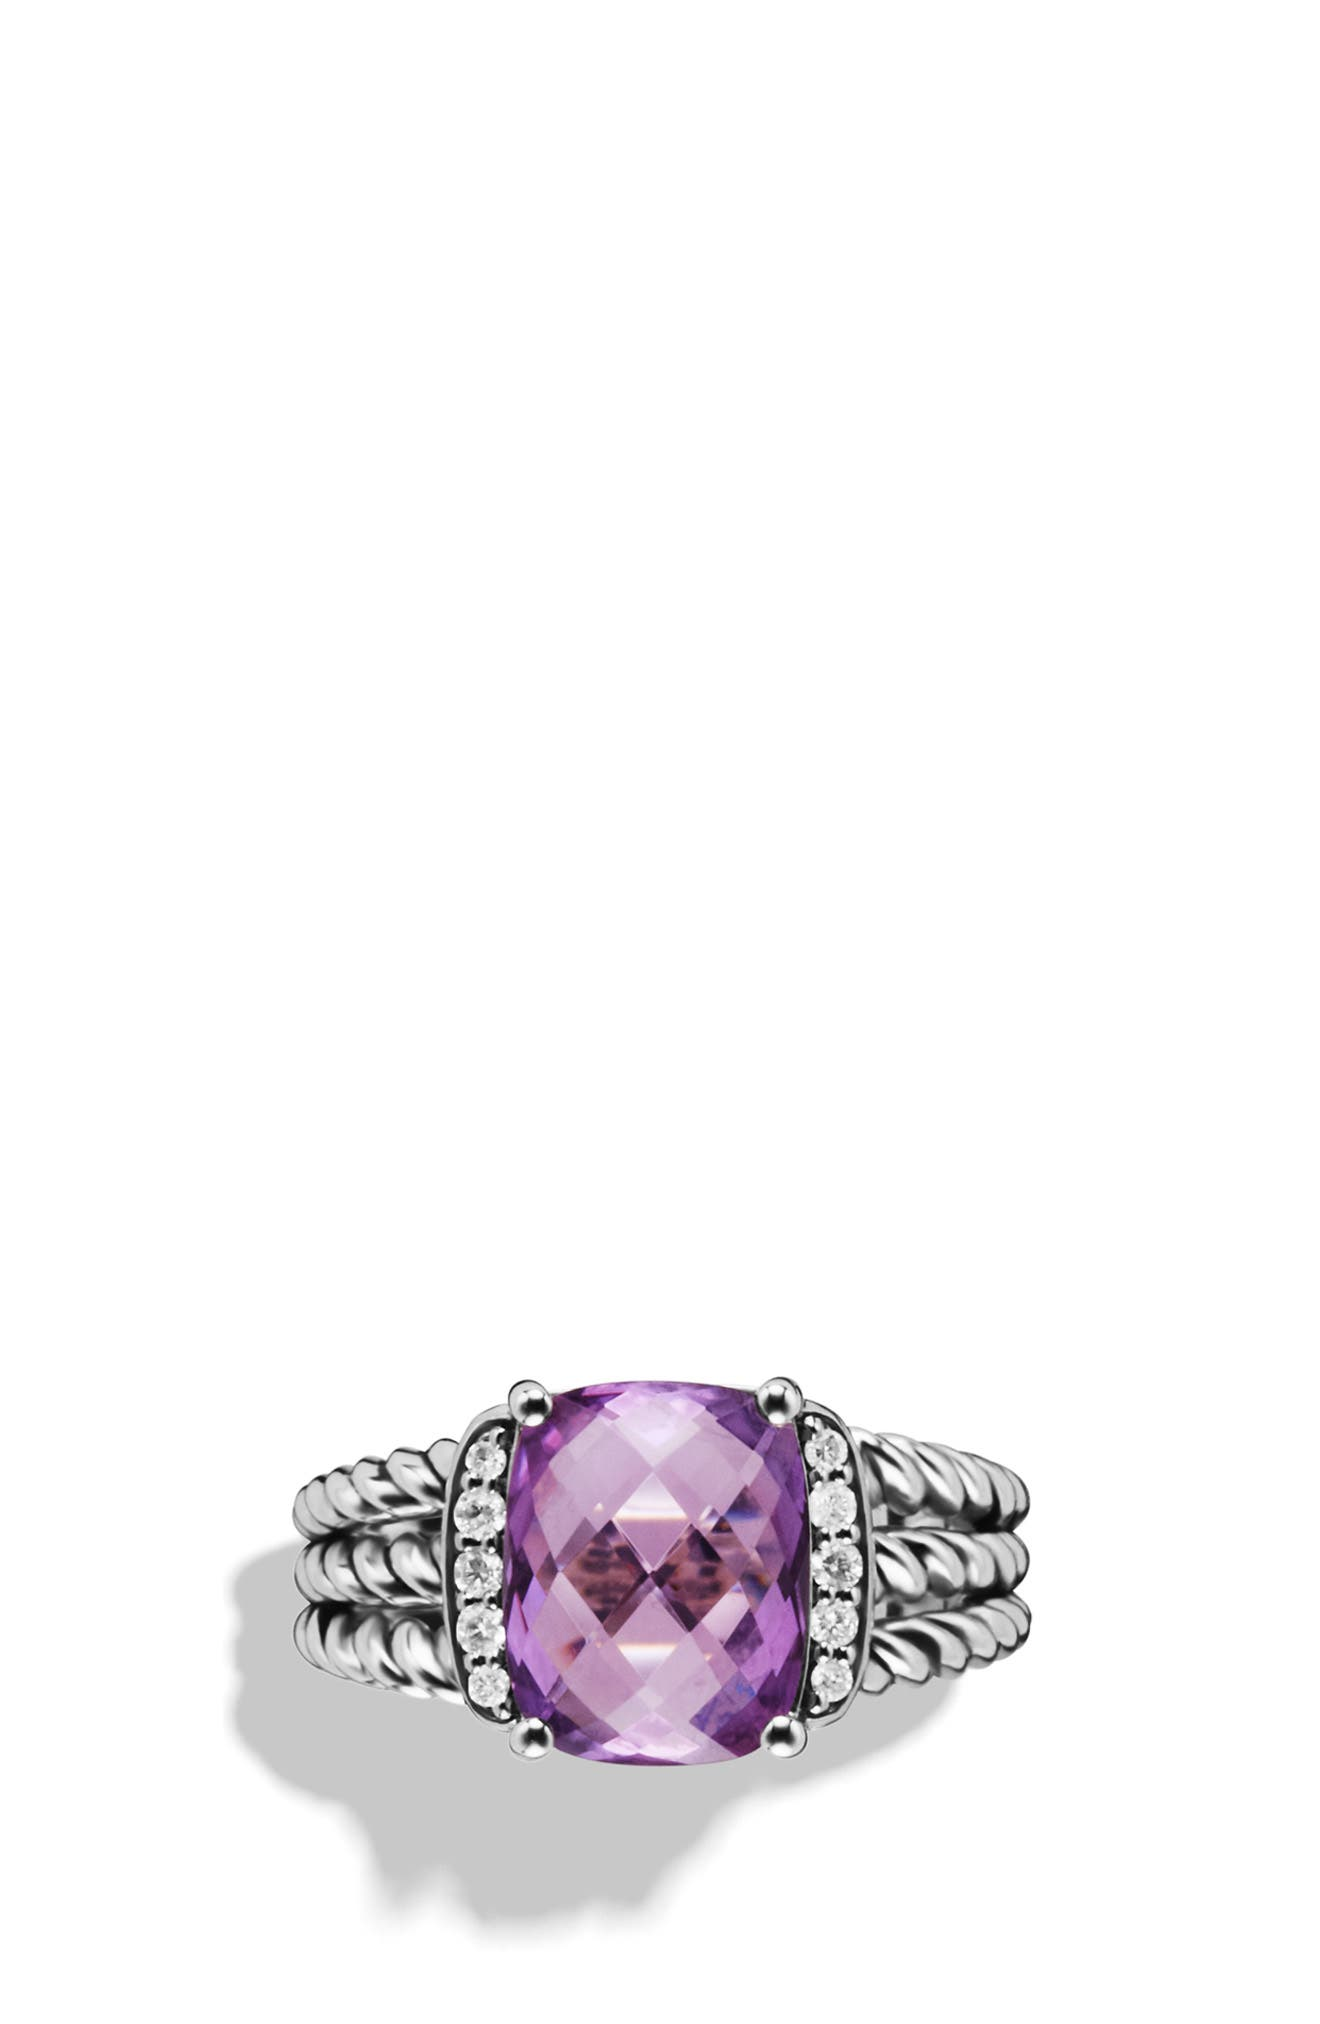 'Wheaton' Petite Ring with Semiprecious Stone & Diamonds,                         Main,                         color, 040